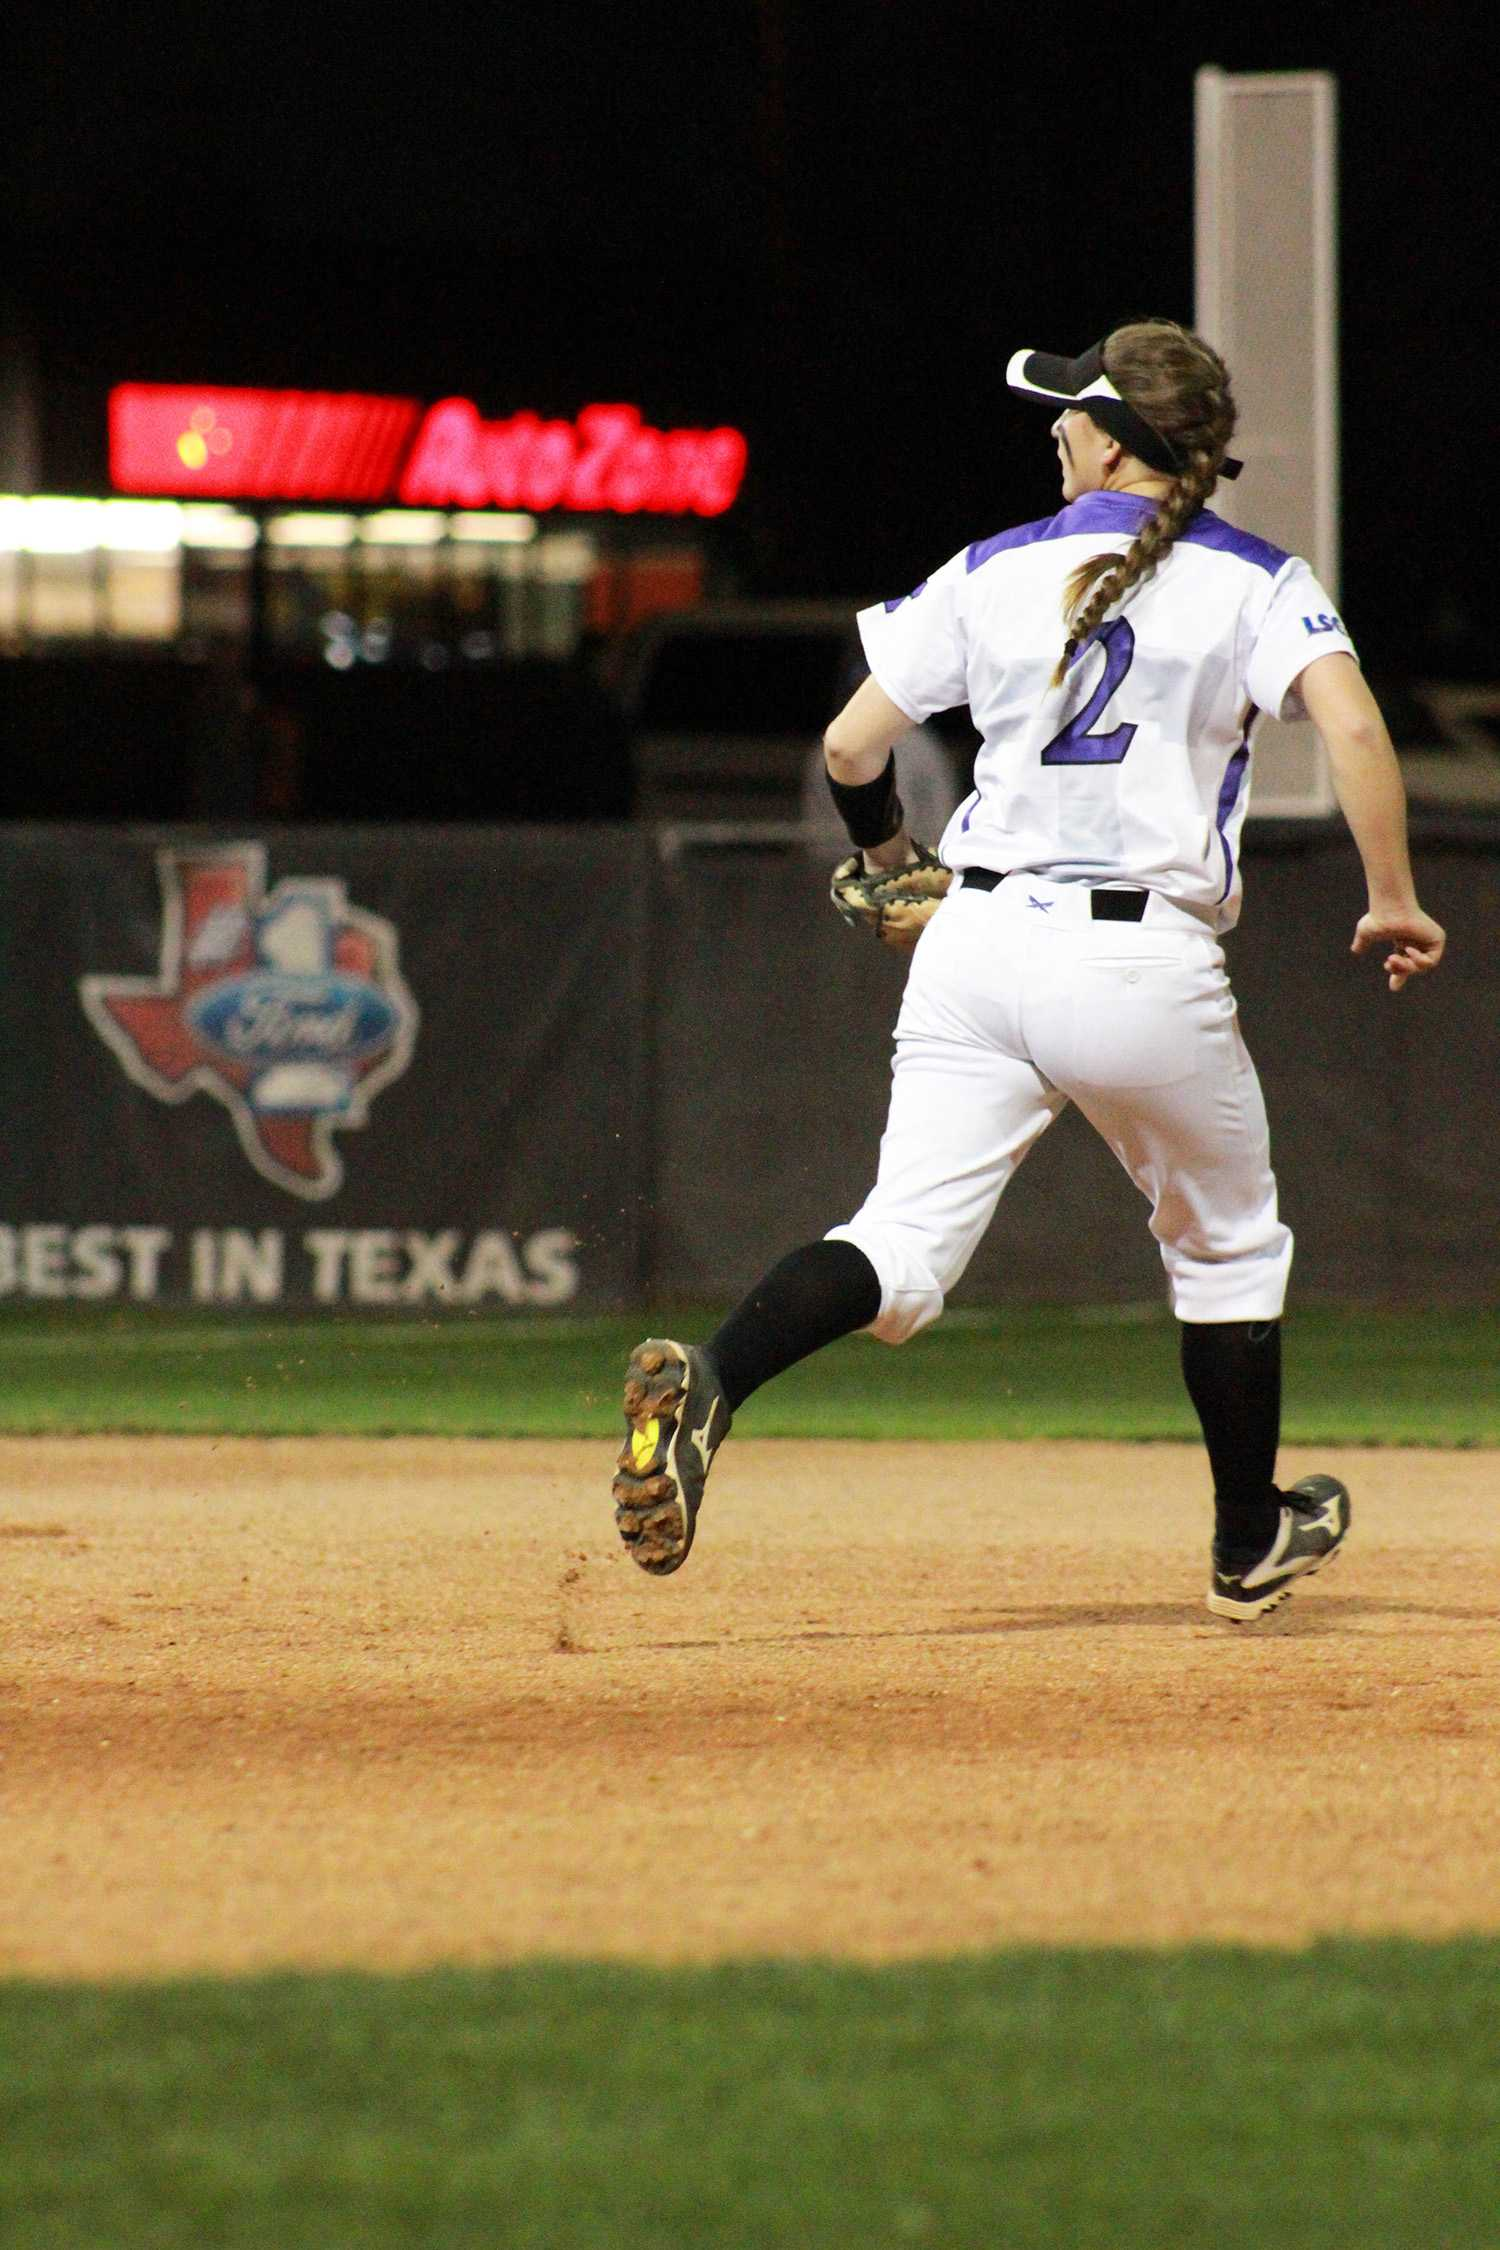 Marisa Flores running to protect second base.